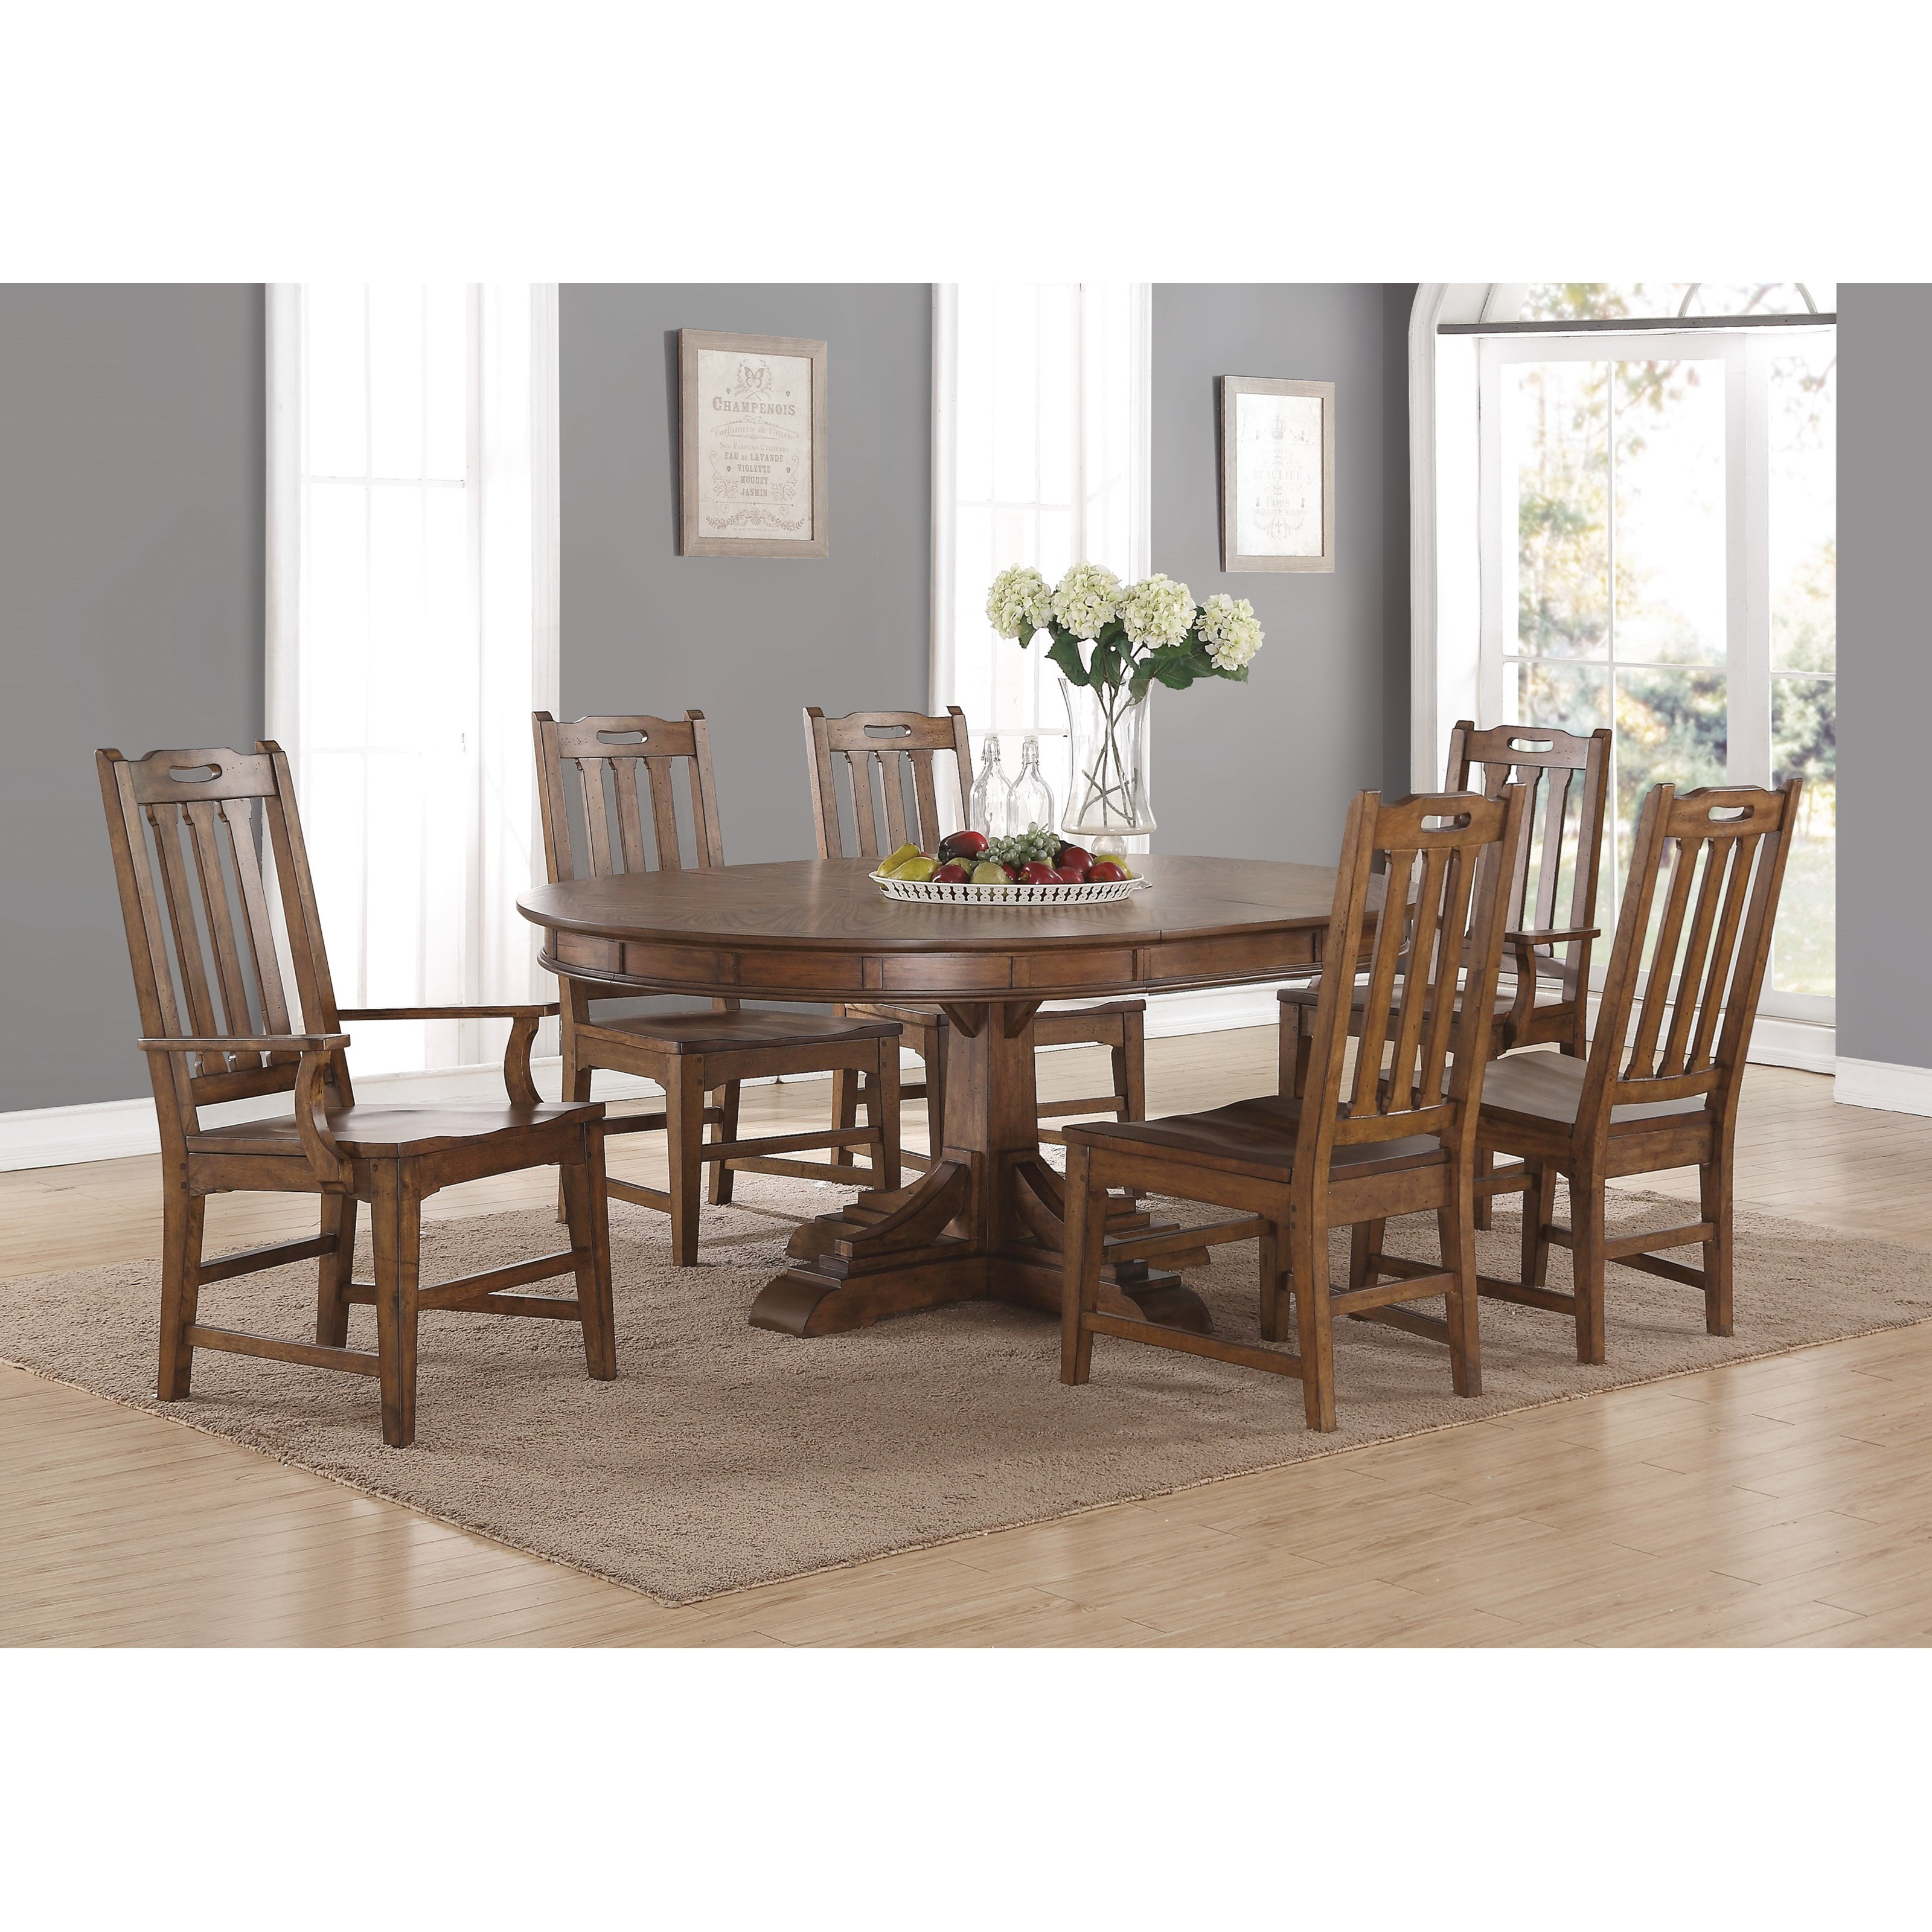 Flexsteel wynwood collection sonora mission formal oval for Fancy dining table and chairs